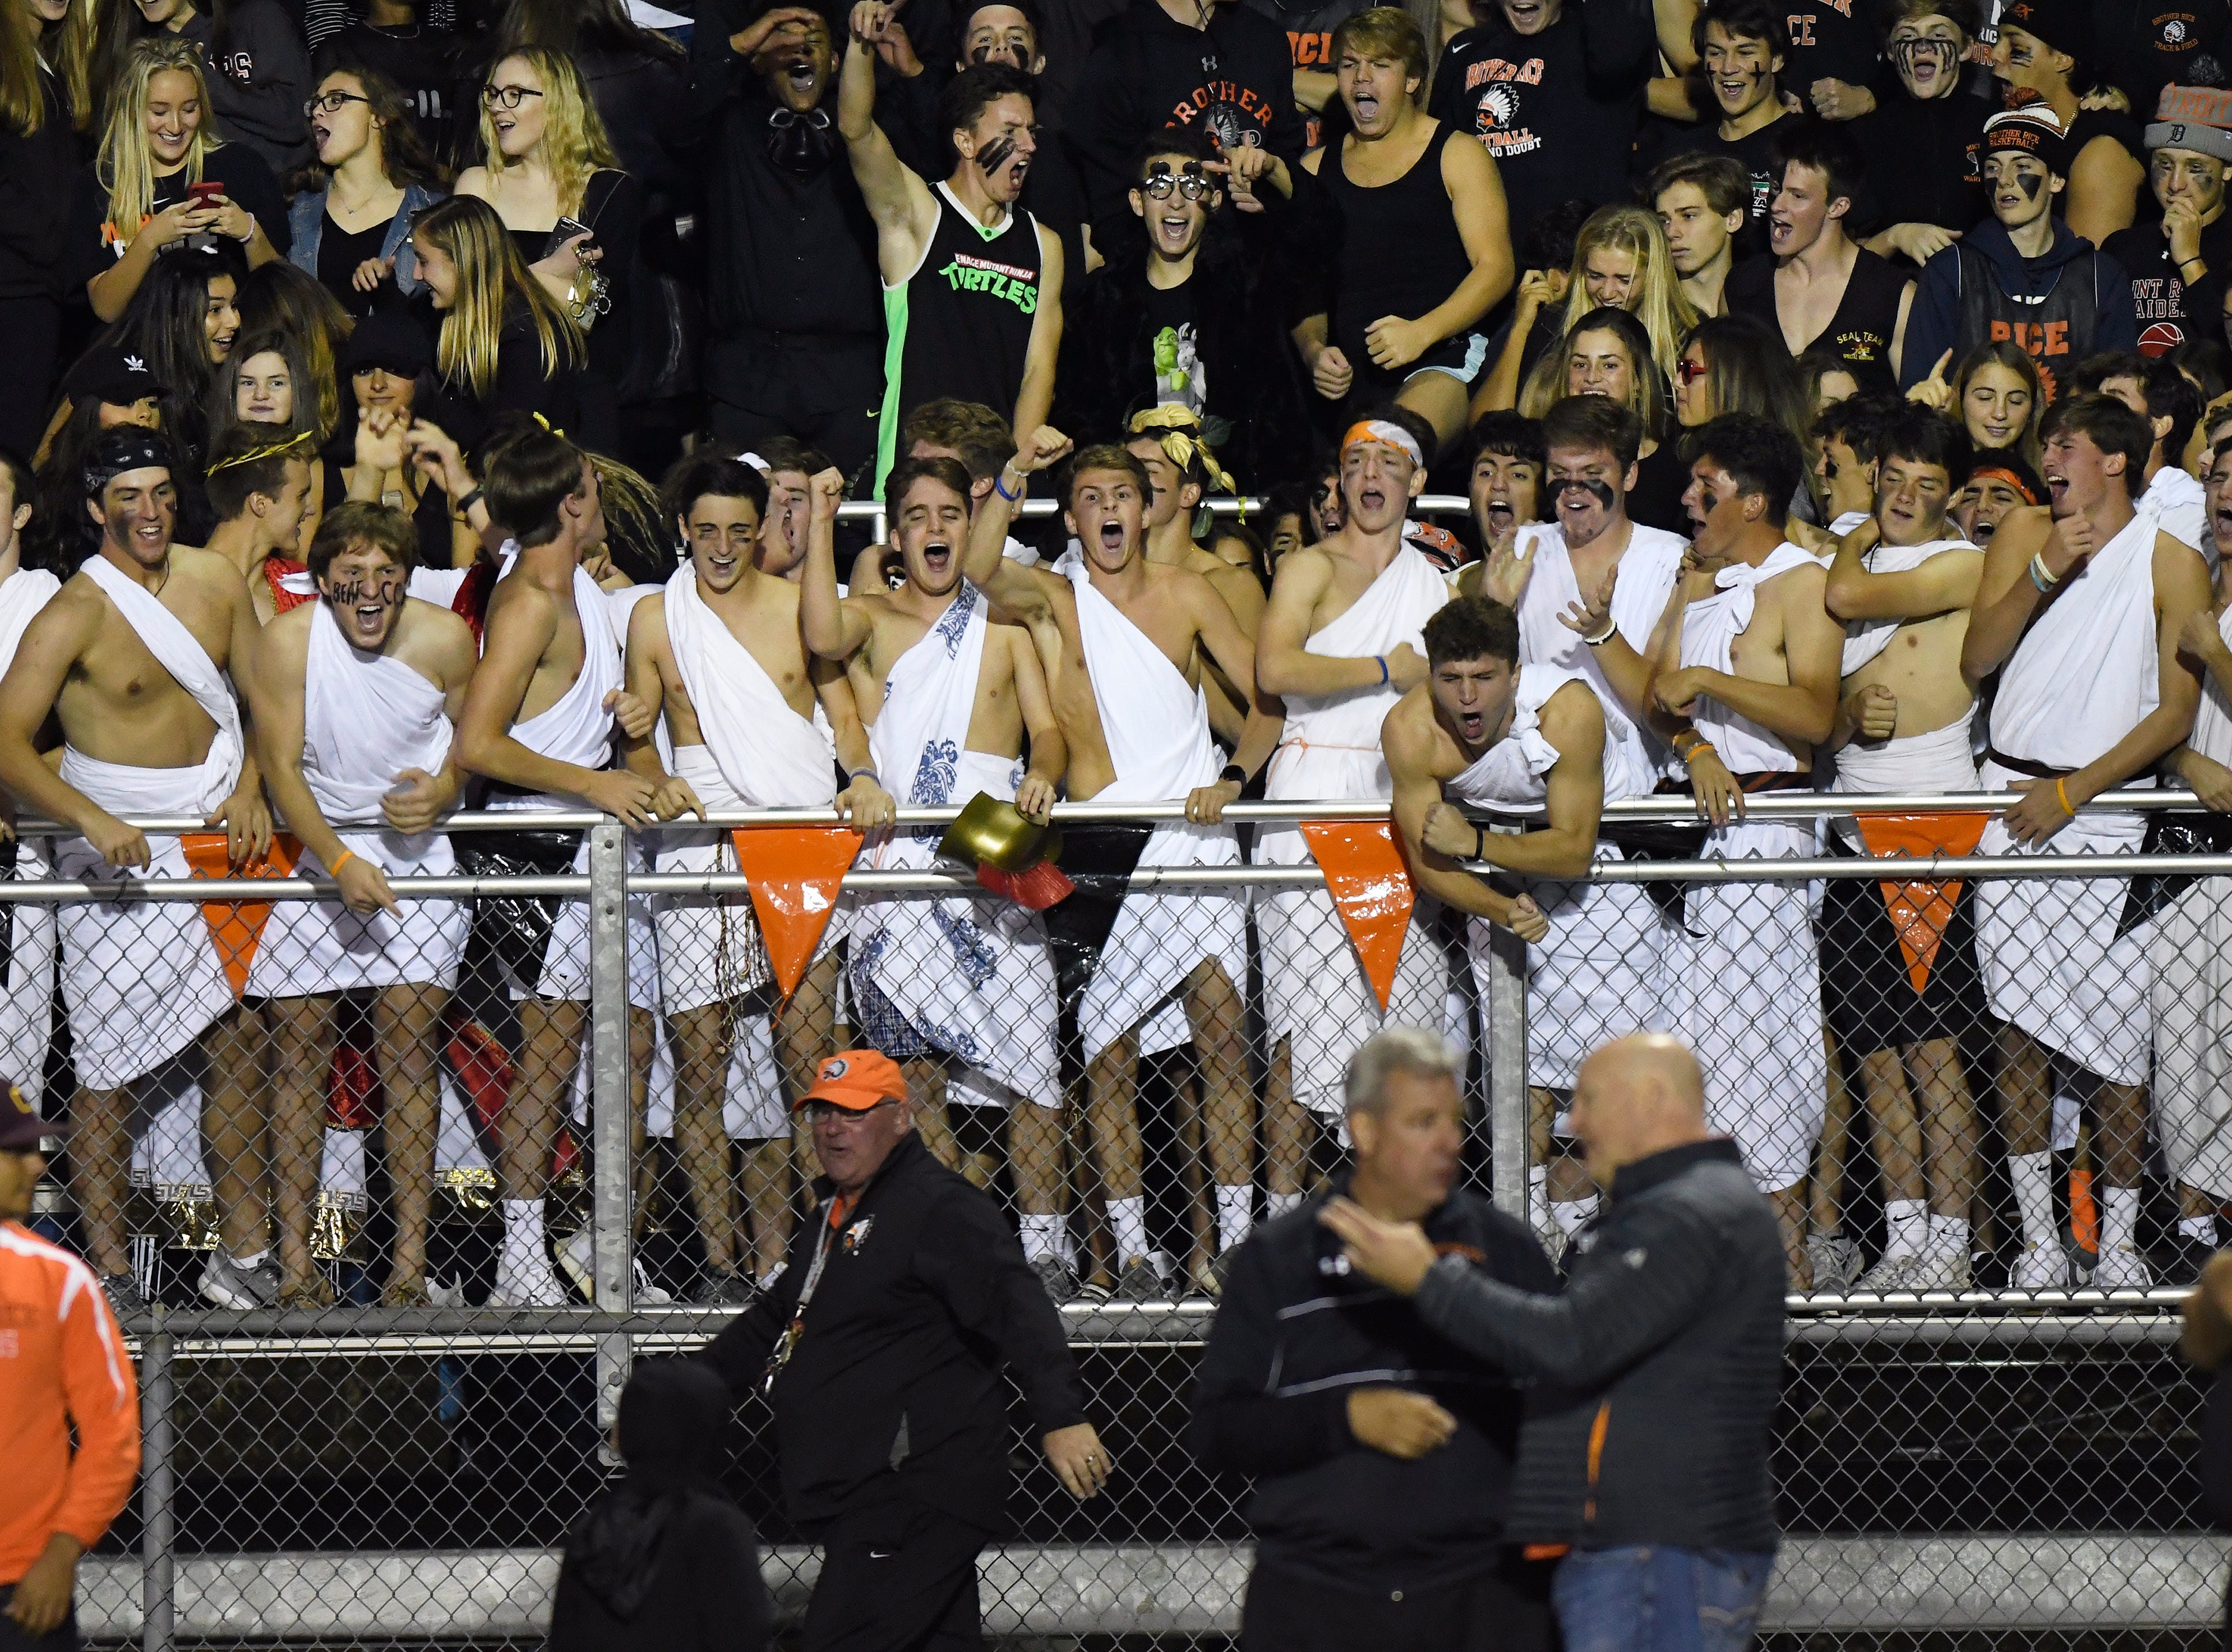 Birmingham Brother Rice students, many in togas, have fun as they cheer on their team as the played against Detroit Catholic Central in the fourth quarter, Saturday, Sept. 22, 2018 at Hurley Field in Berkley, Mich.  Catholic Central defeated Brother Rice, 21-0.